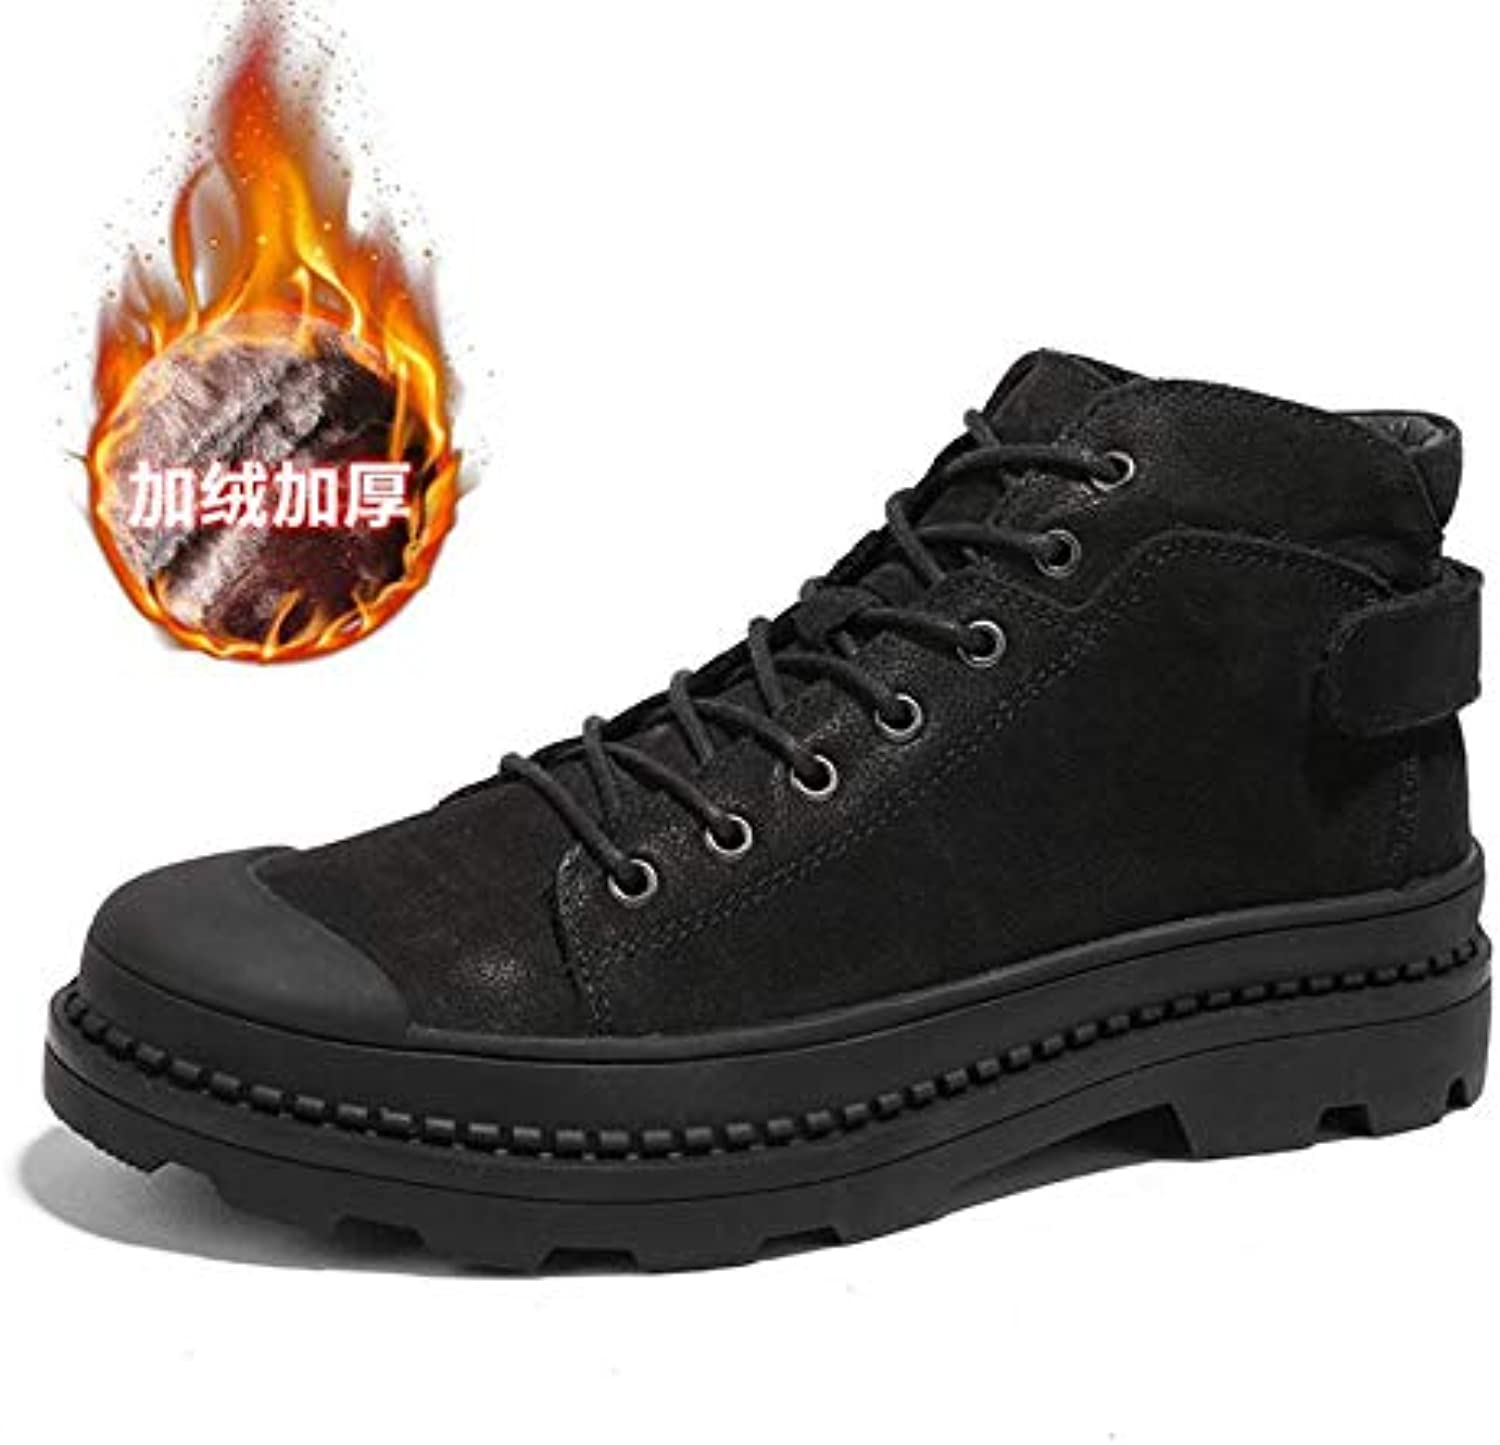 Martin Boots Men's Boots British First Layer Leather Boots Men's high-top shoes Men's shoes Autumn and Winter Large Size shoes 37-46